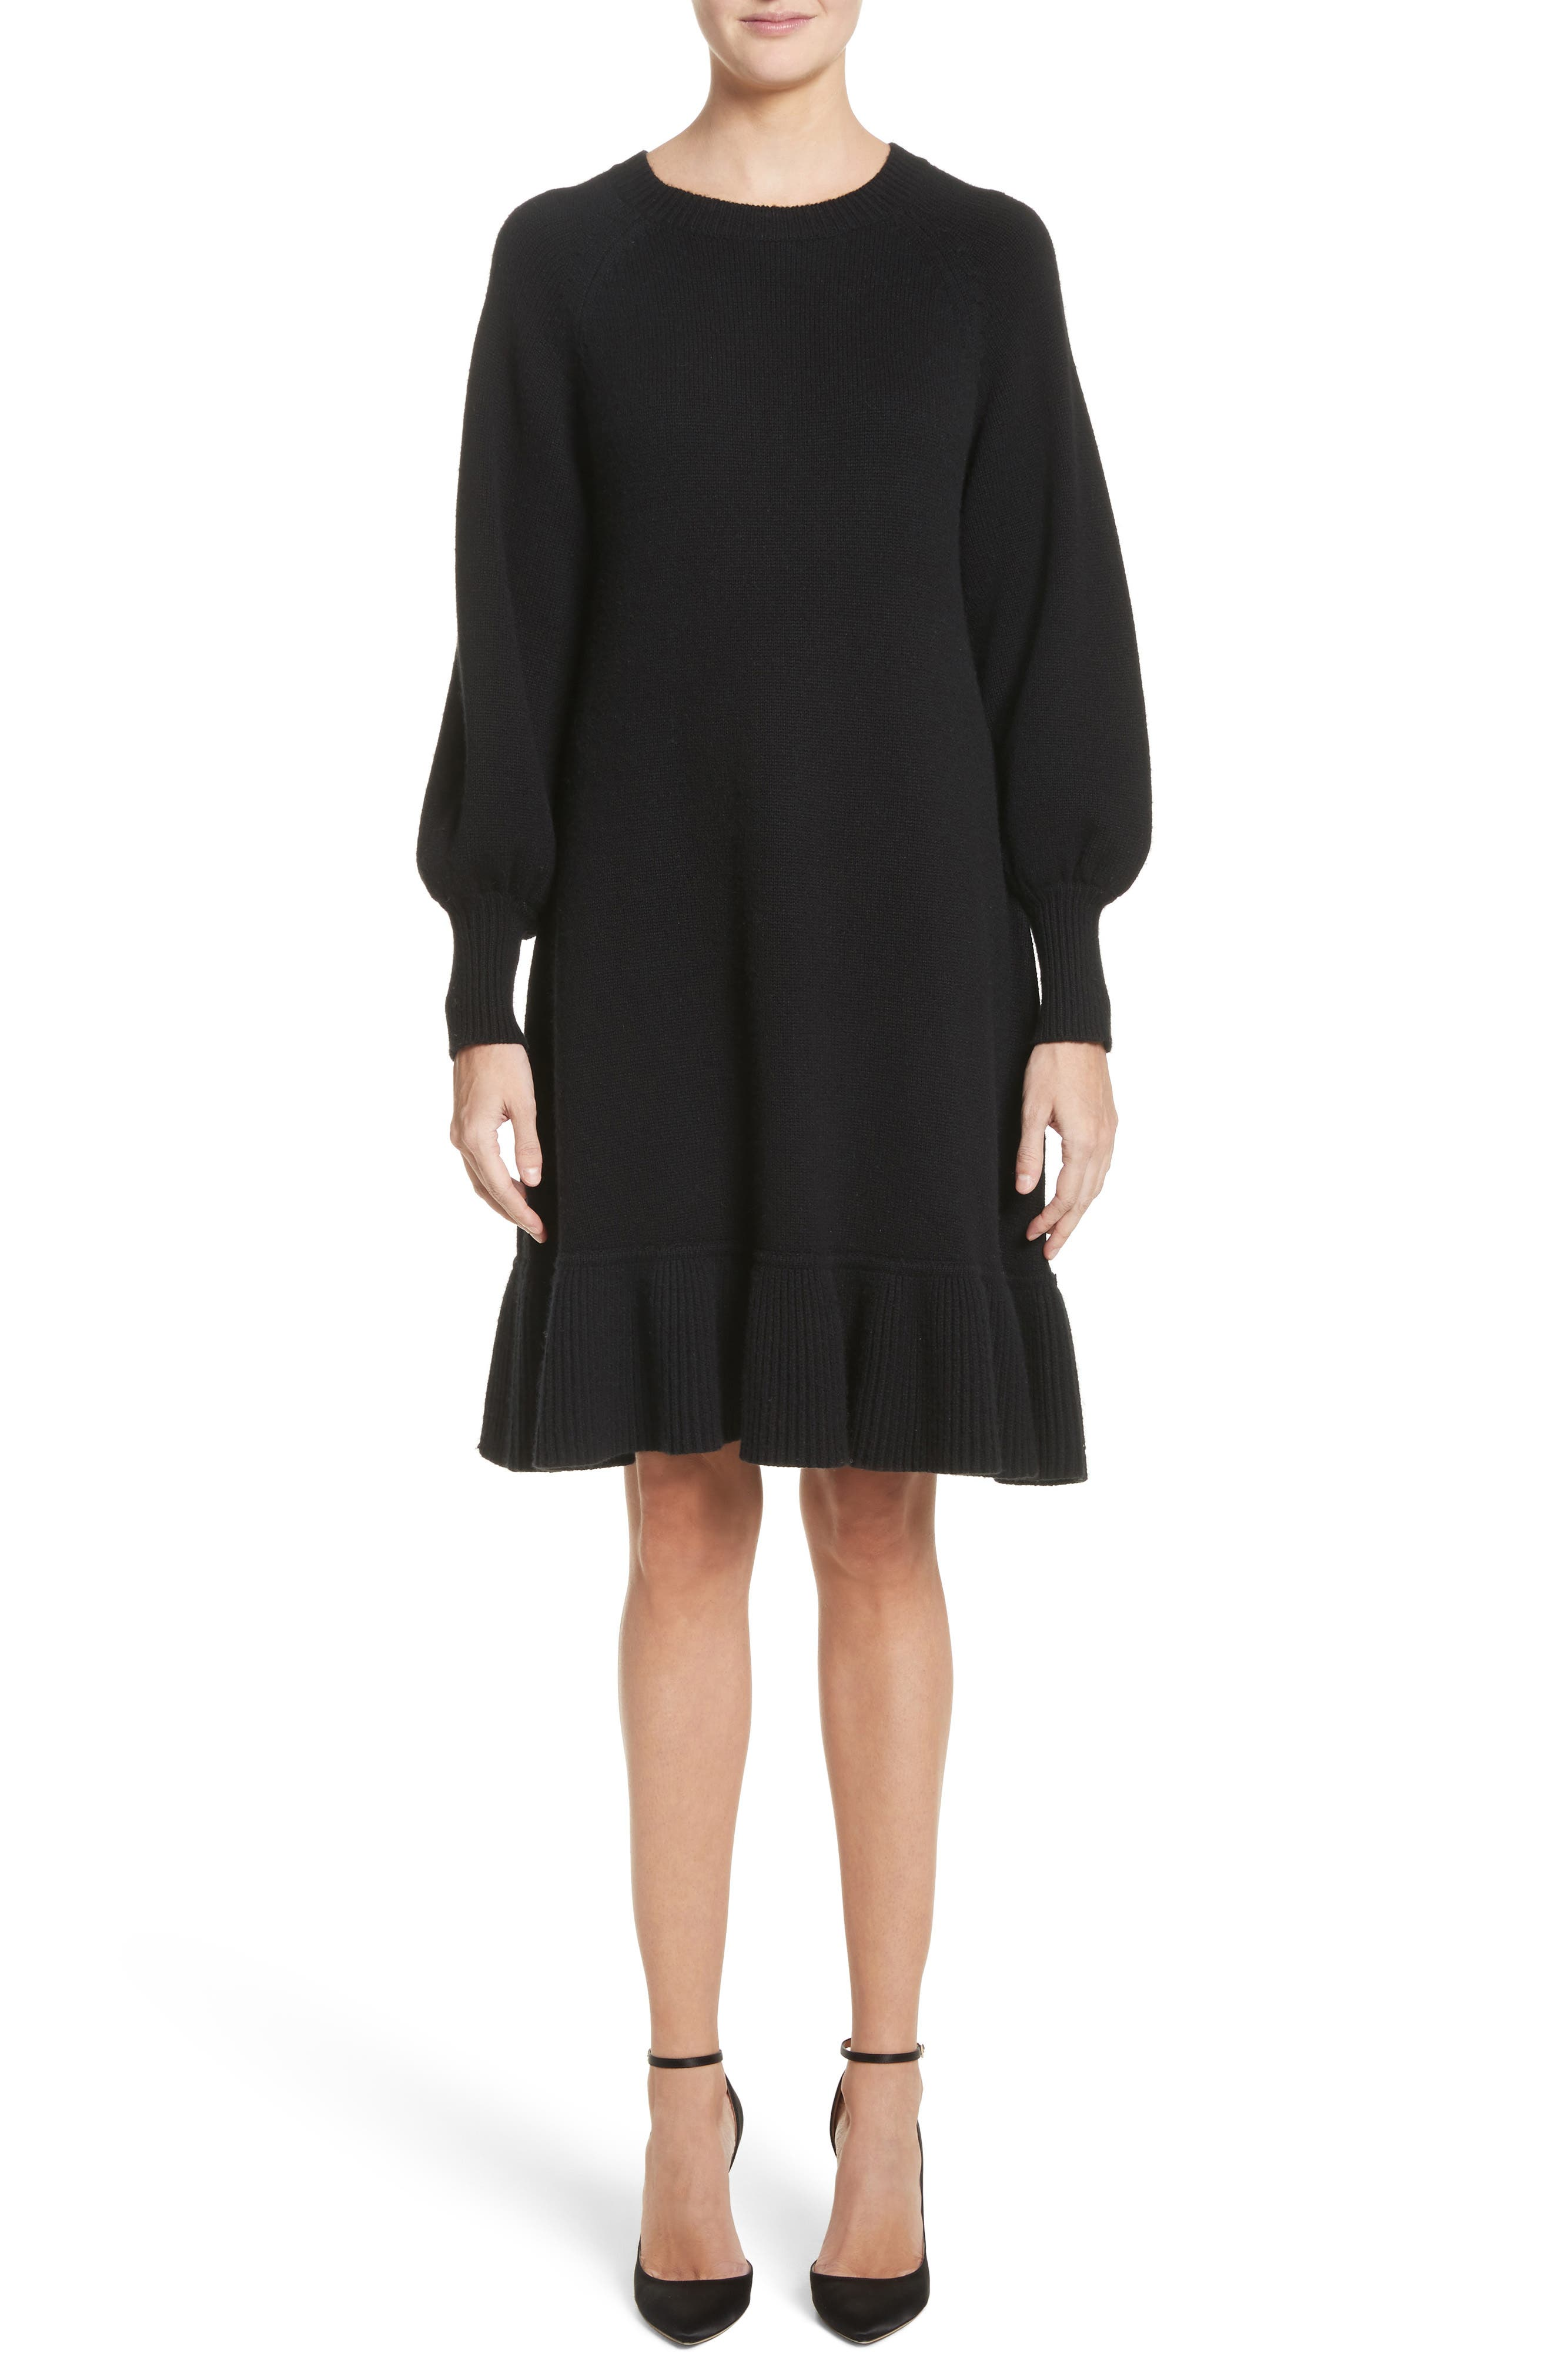 Alternate Image 1 Selected - Co Ruffle Wool & Cashmere Sweater Dress